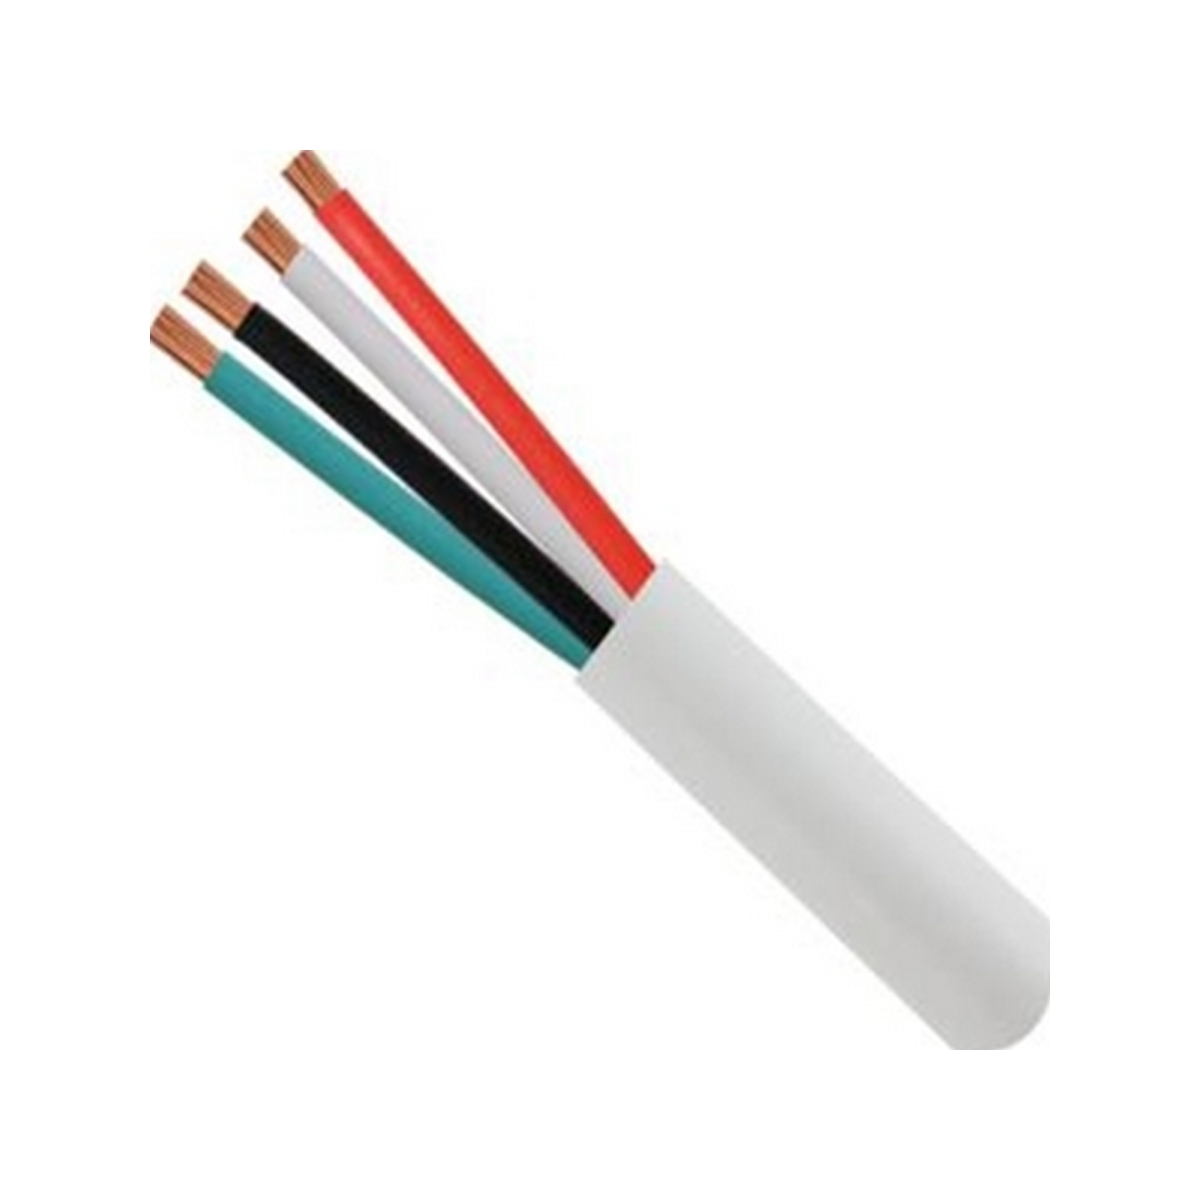 Vertical 14/4 stranded unshielded bare copper speaker wire - plenum rated - 500ft box - white jacket